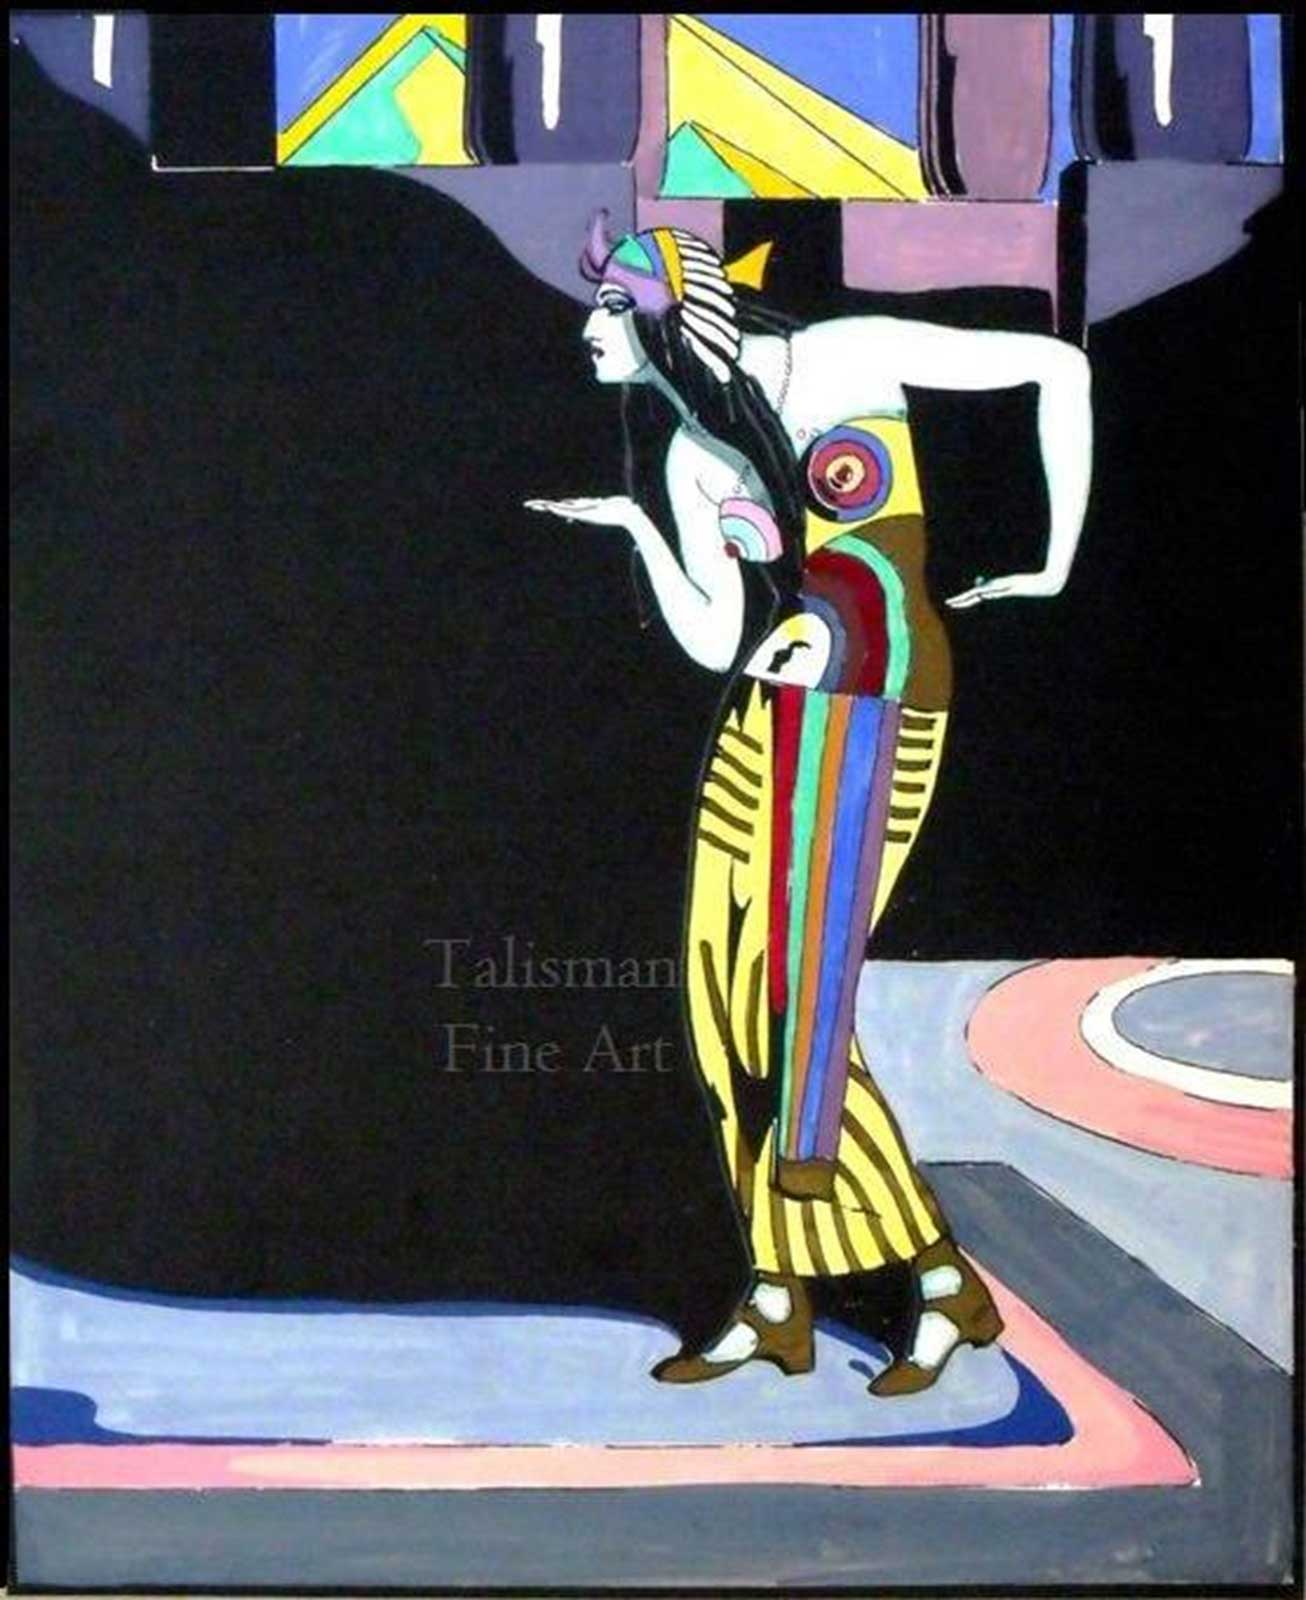 Talusman Fine Art Vera Willoughby - Lubov Tchernicheva dancing Cleopatra (We have more works by Vera Willoughby)  Sold